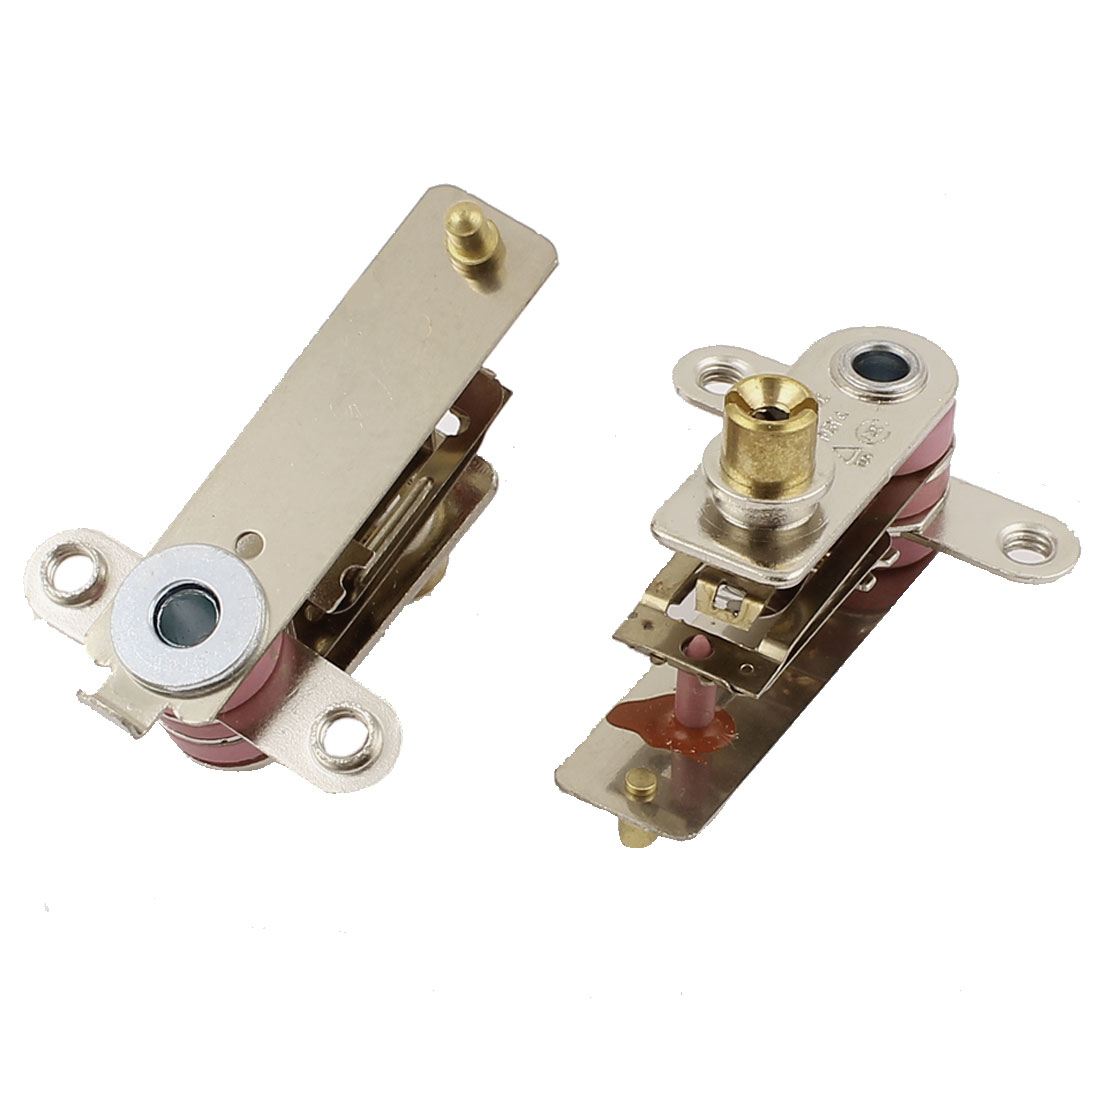 2 Pcs AC 250V 10A Adjustable Temperature Thermostat for Electric Oven